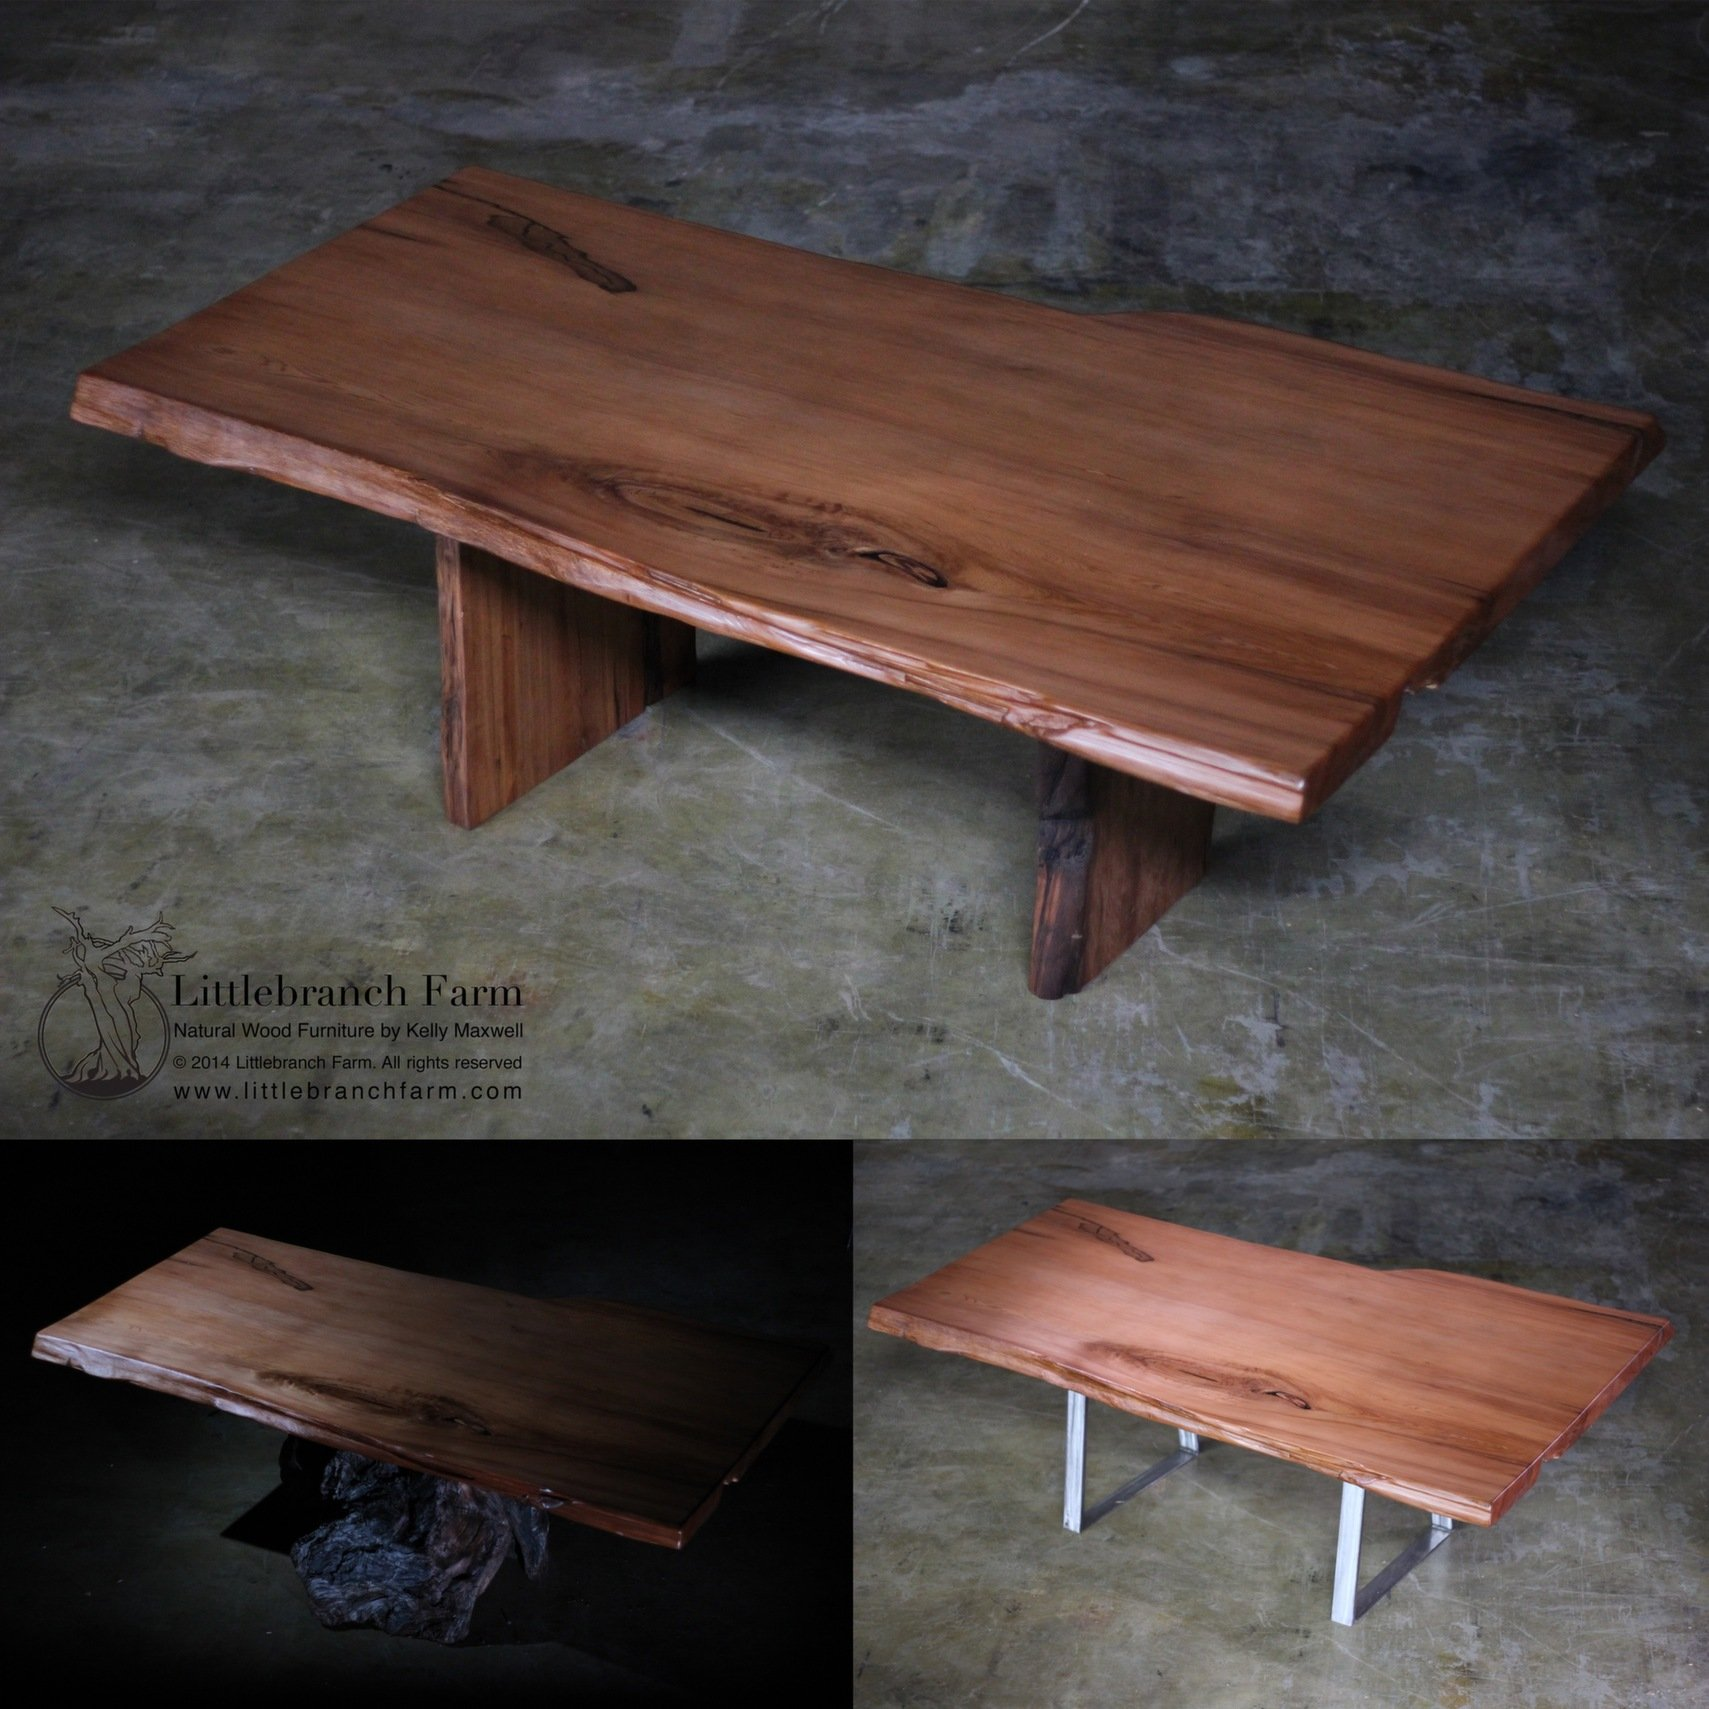 Live Edge Refurbished Redwood Dining Table | Littlebranch Farm